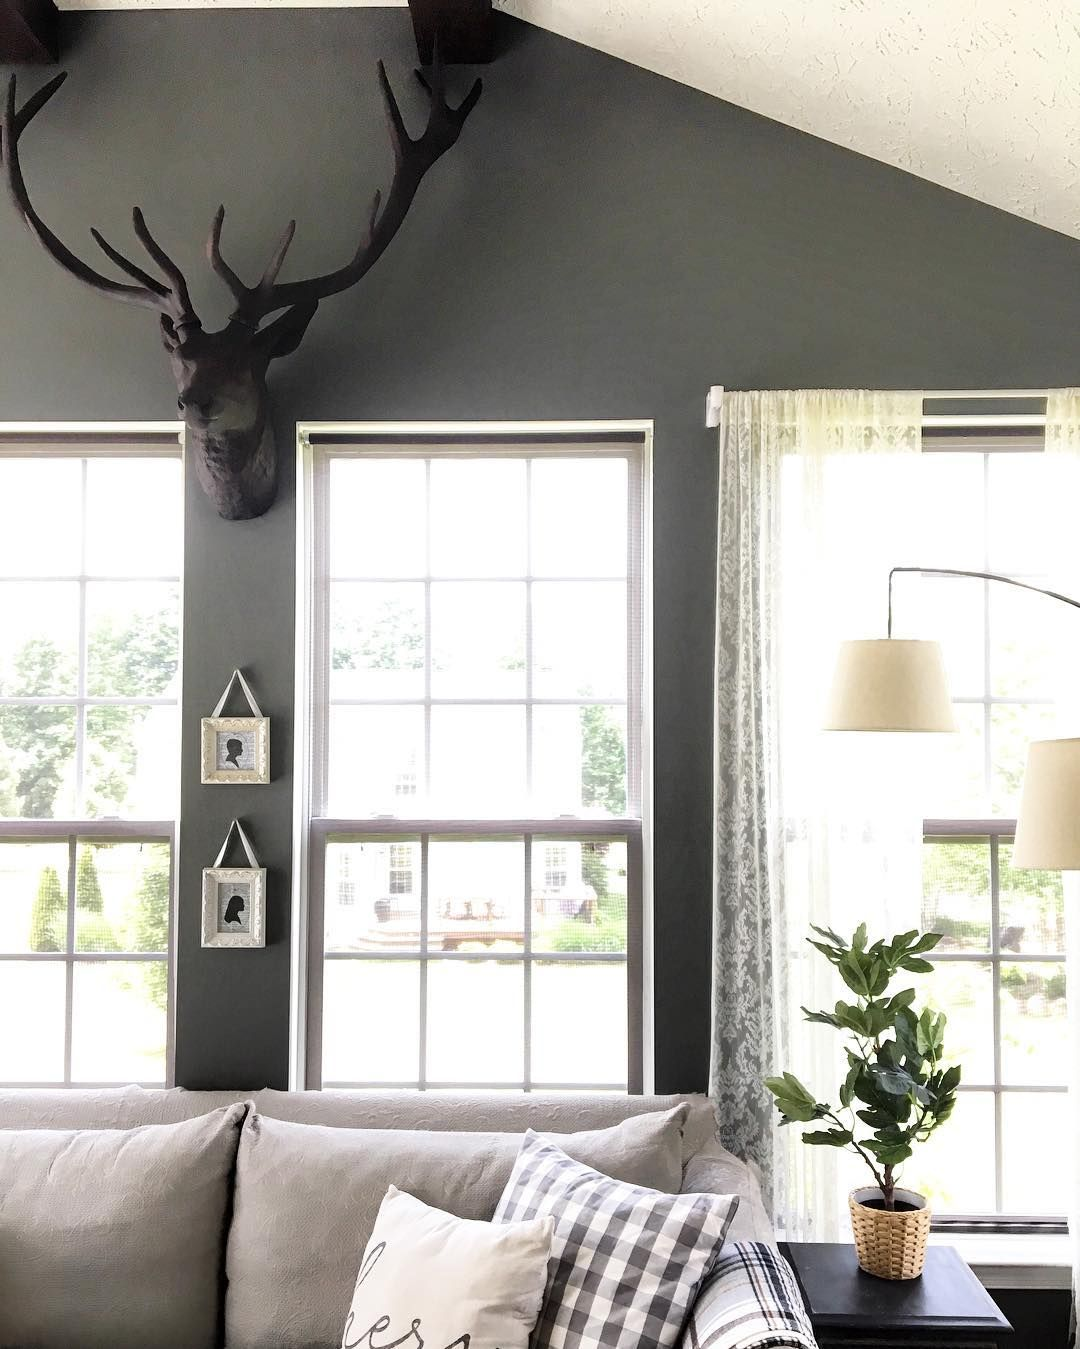 Interior Sunroom Addition Ideas: Our Sunroom Reveal + Summer Home Tour. By Jeanette L